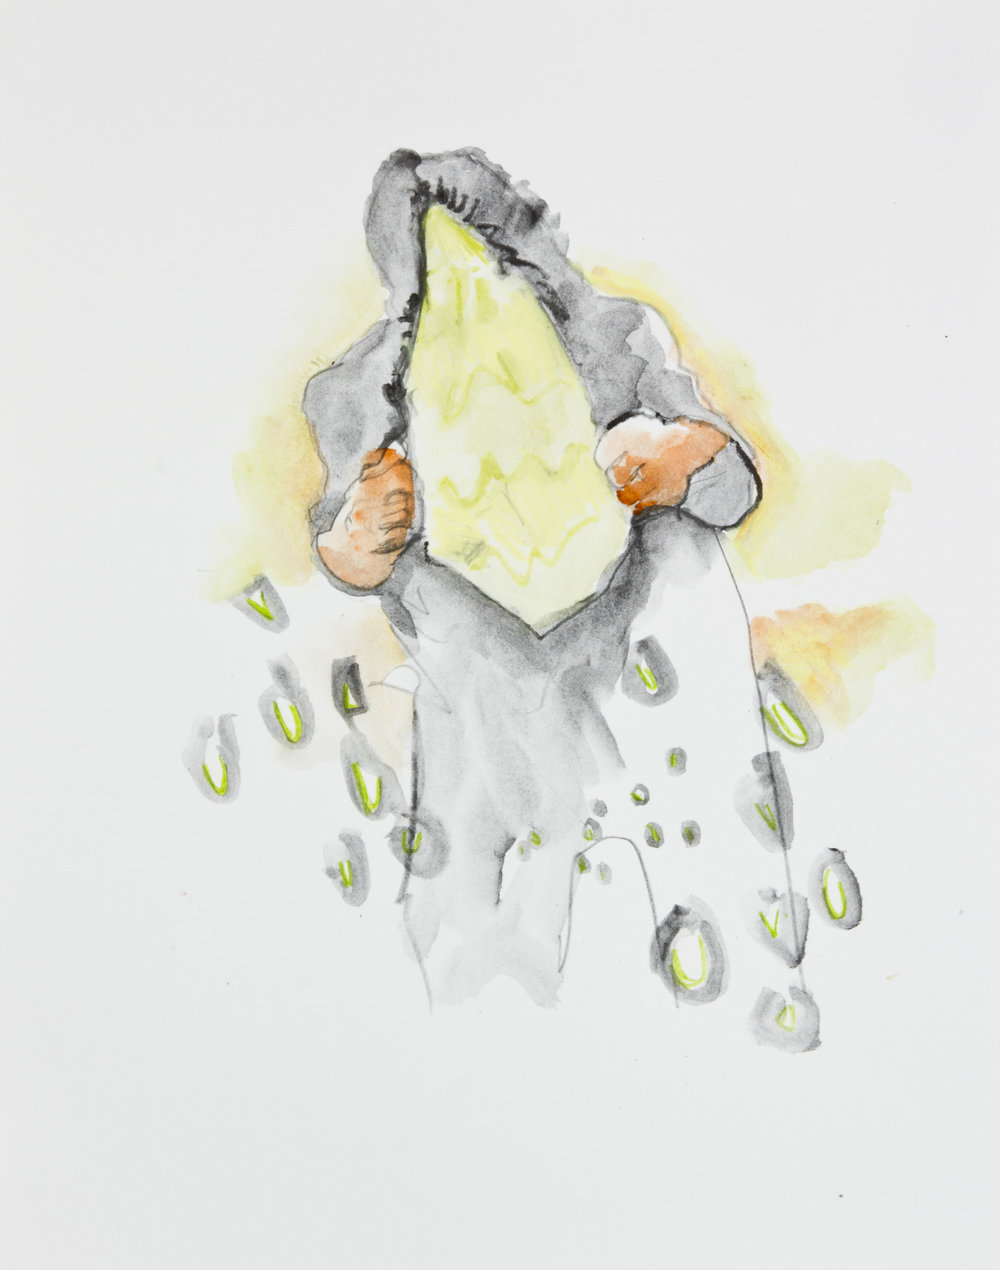 Introvert extrovert, 2013, graphite, crayon and watercolor pencil on paper, 11x14 inches